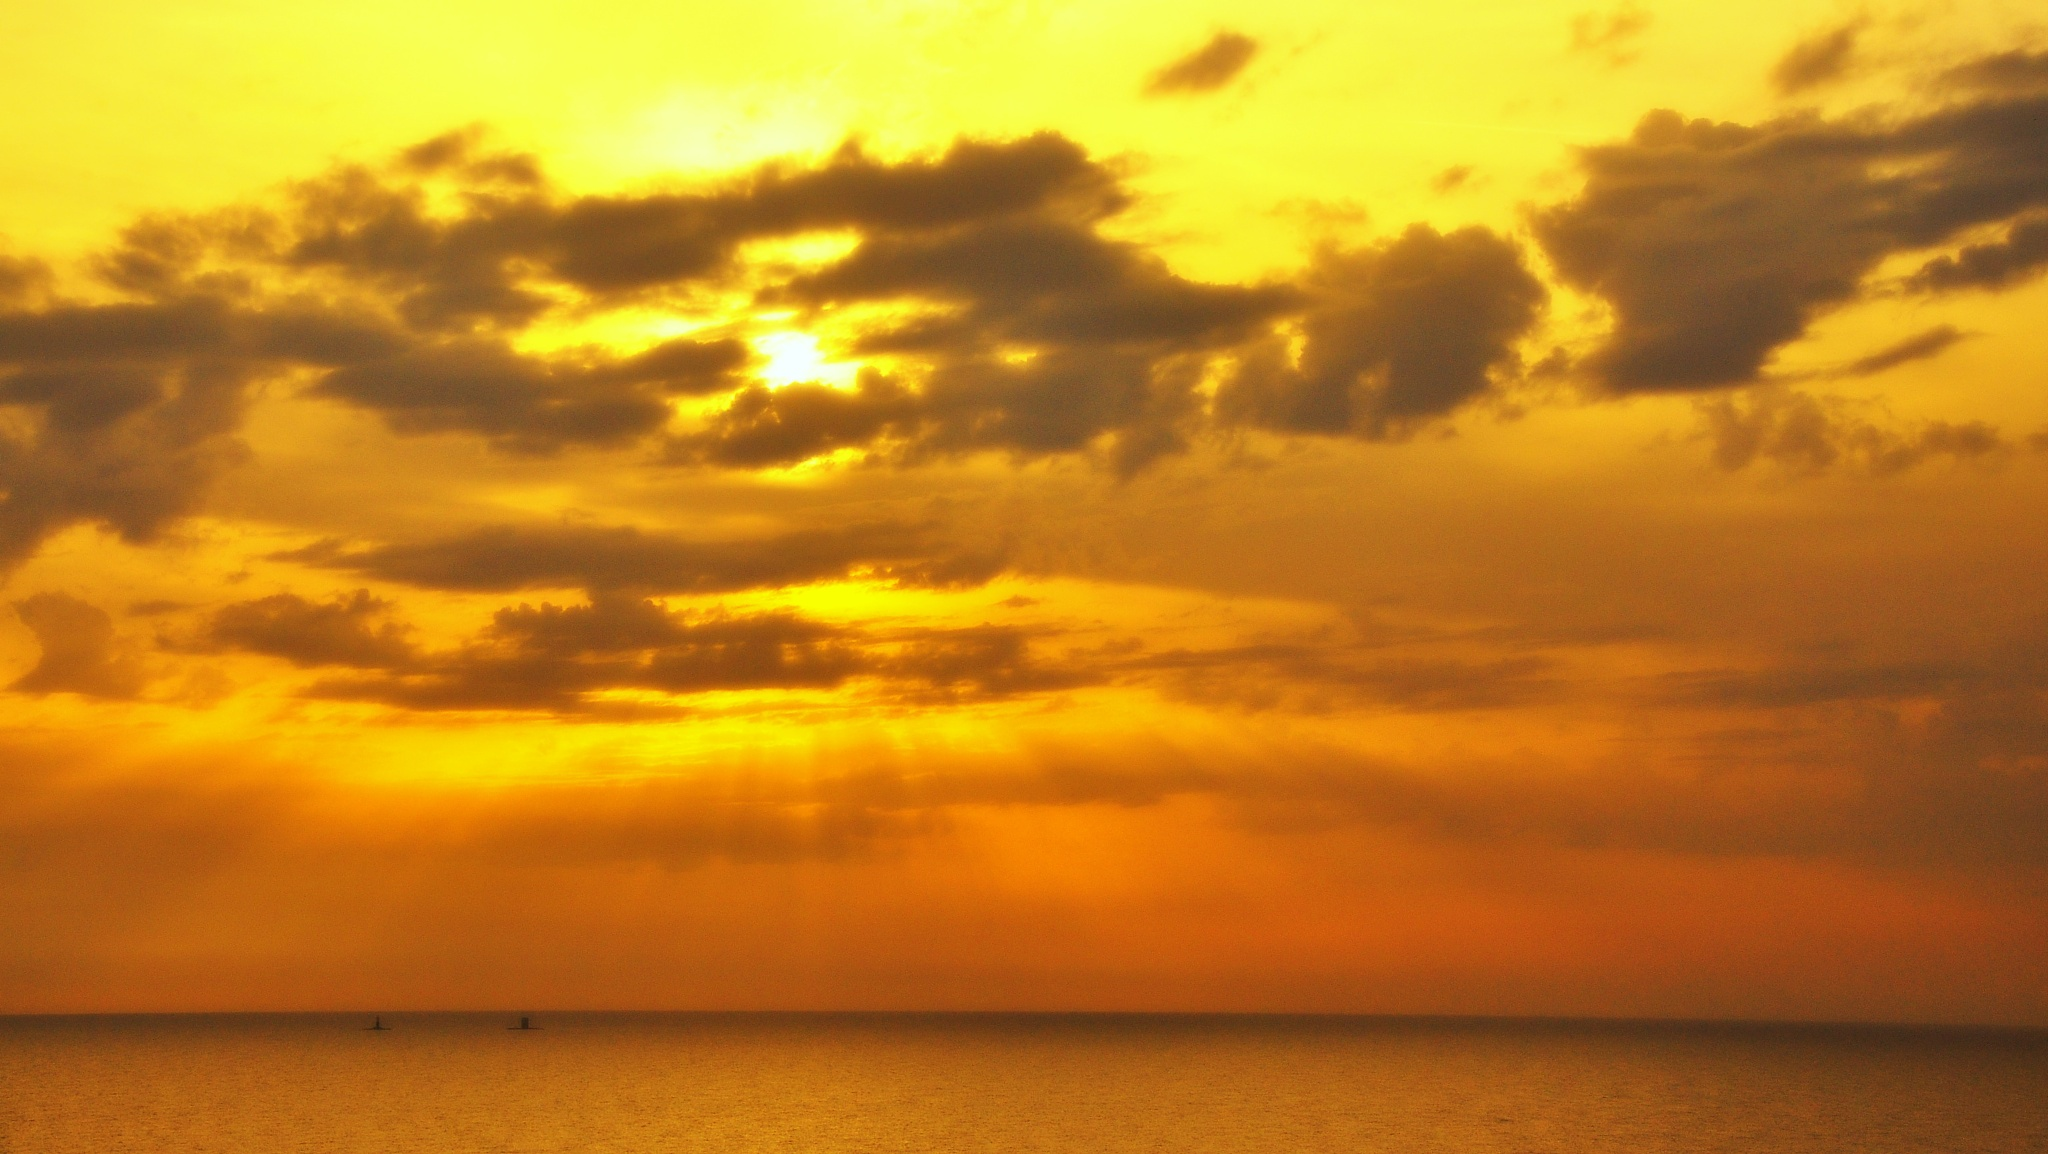 atardecer by angelgarcia